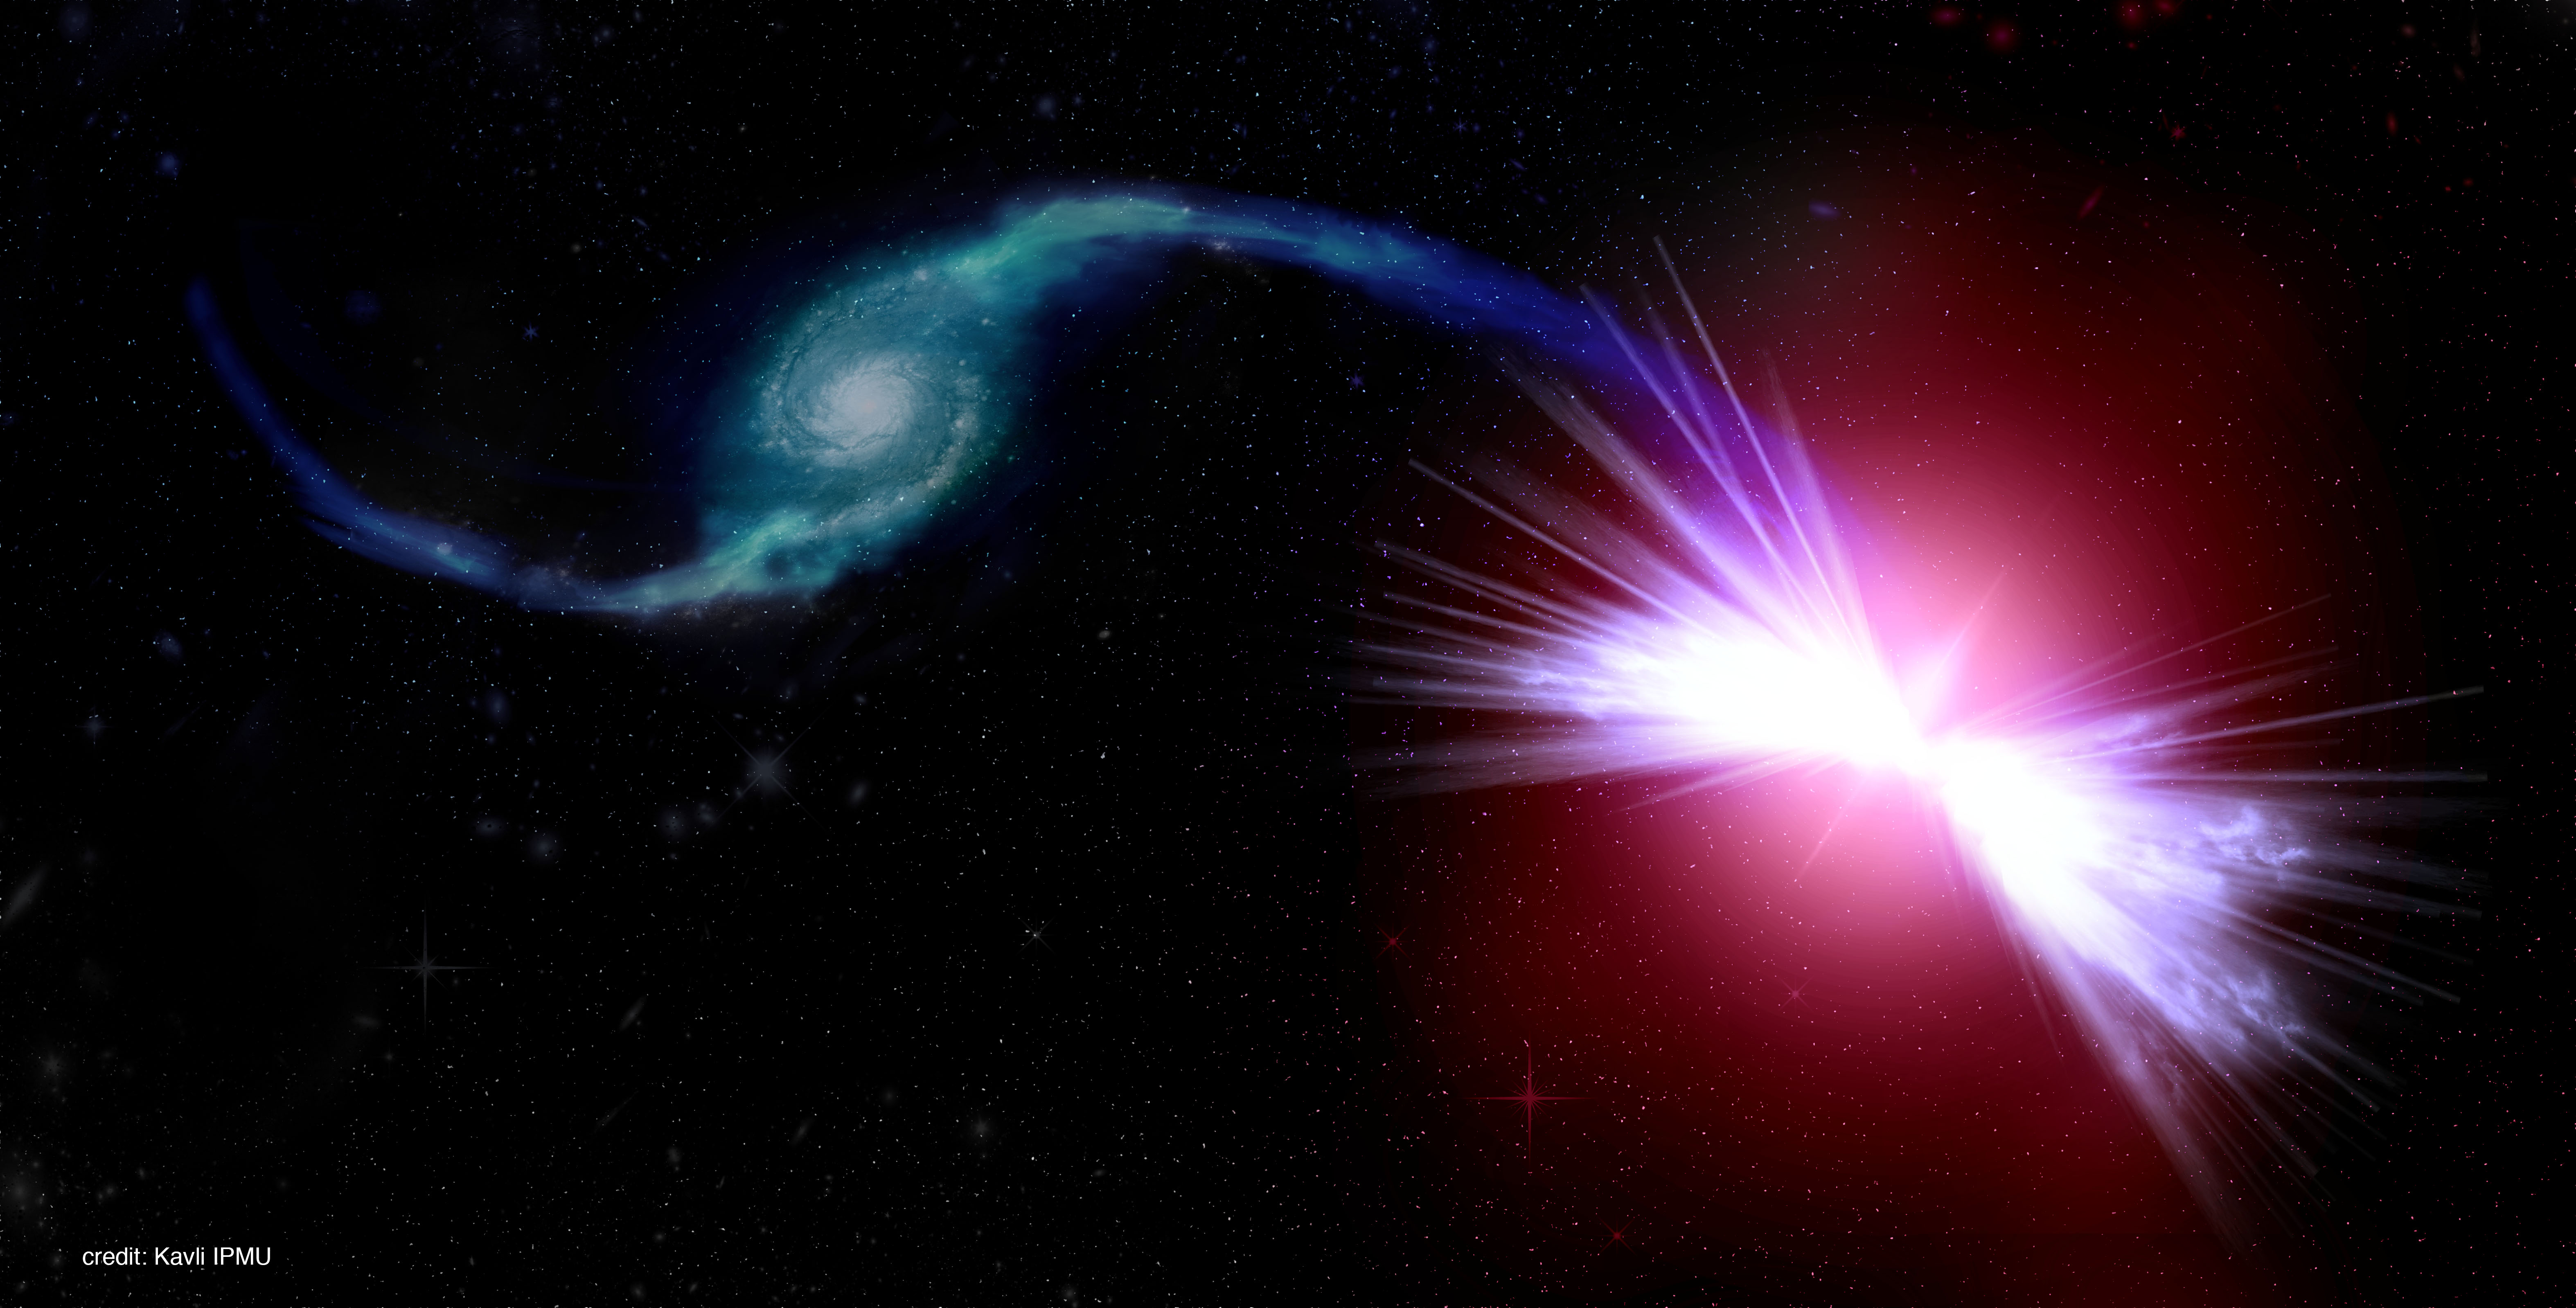 An artist's rendition of the galaxies Akira (right) and Tetsuo (left) in action.  Akira's gravity pulls Tetsuo's gas into its central supermassive black hole, fueling winds that have the power to heat Akira's gas. The action of the black hole winds prevents a new cycle of star formation in Akira.  Image Credit: Kavli IPMU